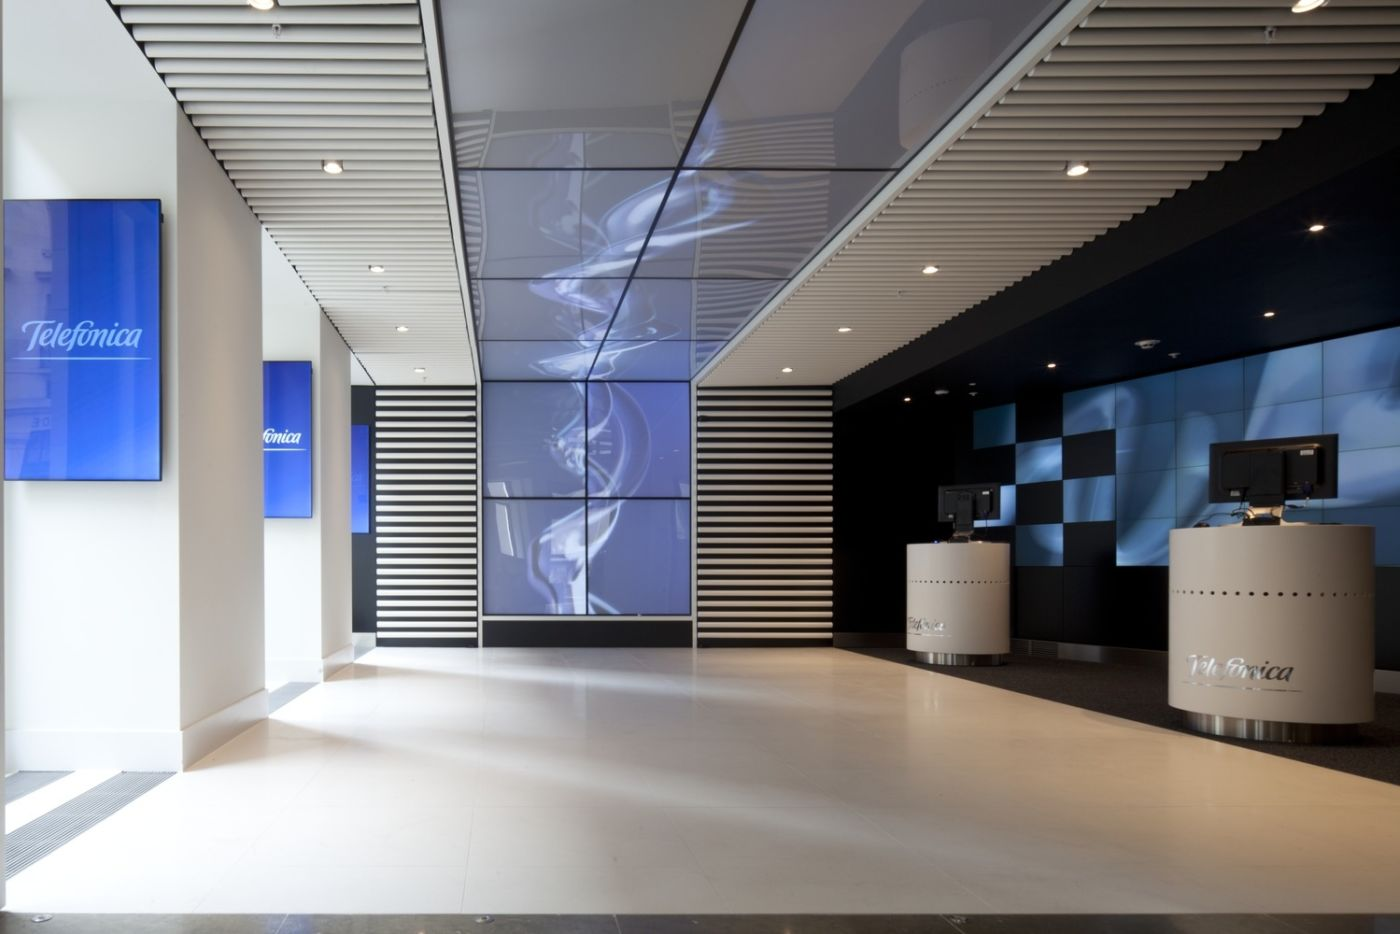 Large screen in reception area